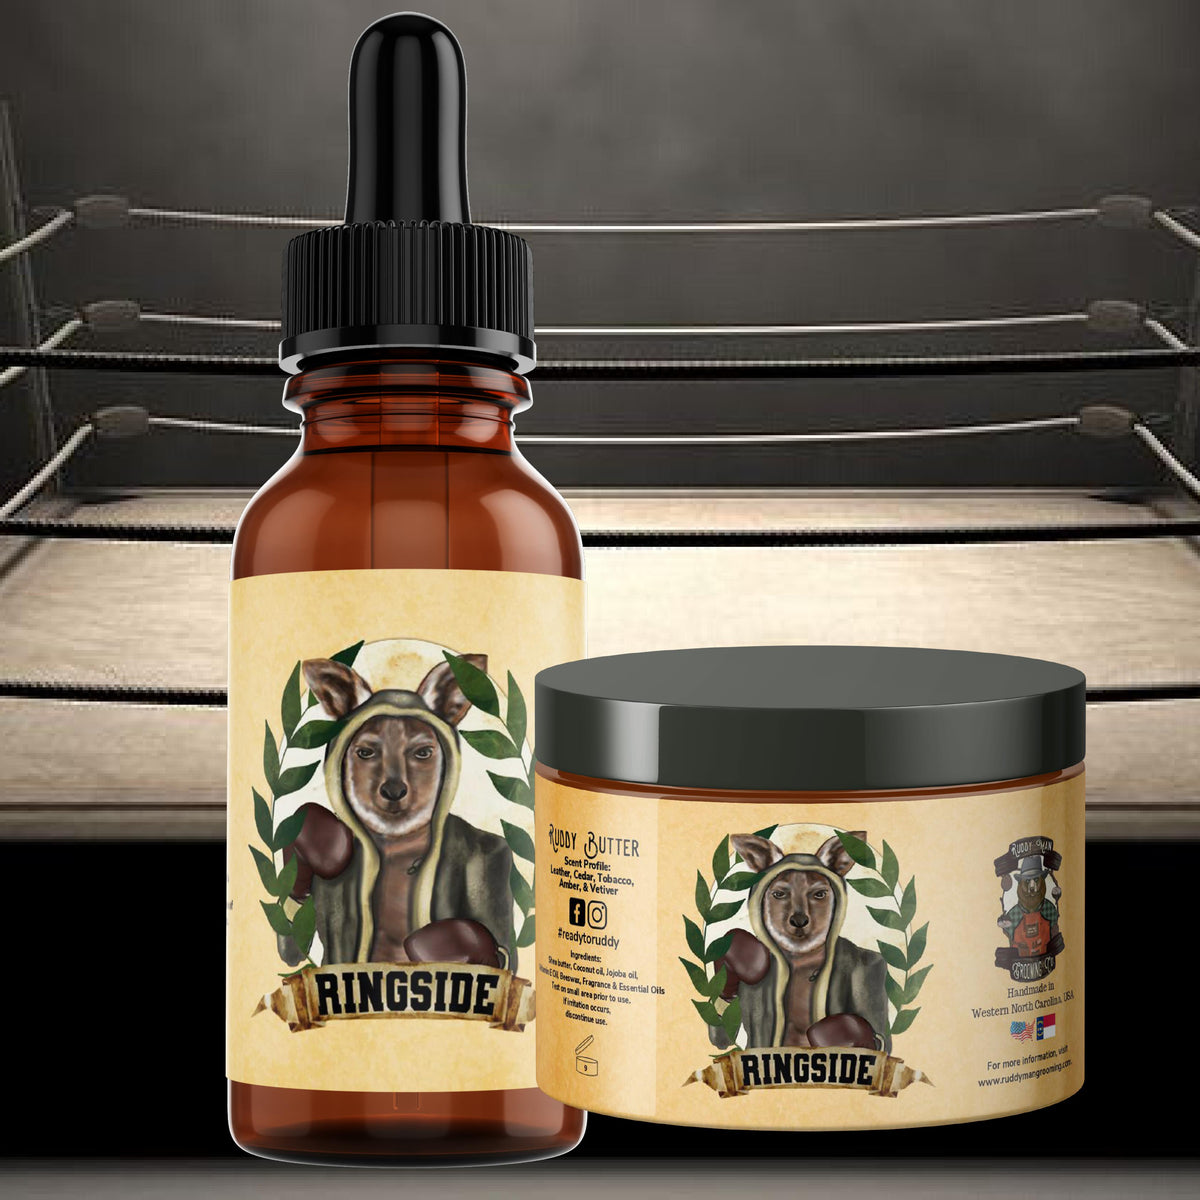 Ringside-A Champion's Beard Oil/Ruddy Butter Duo